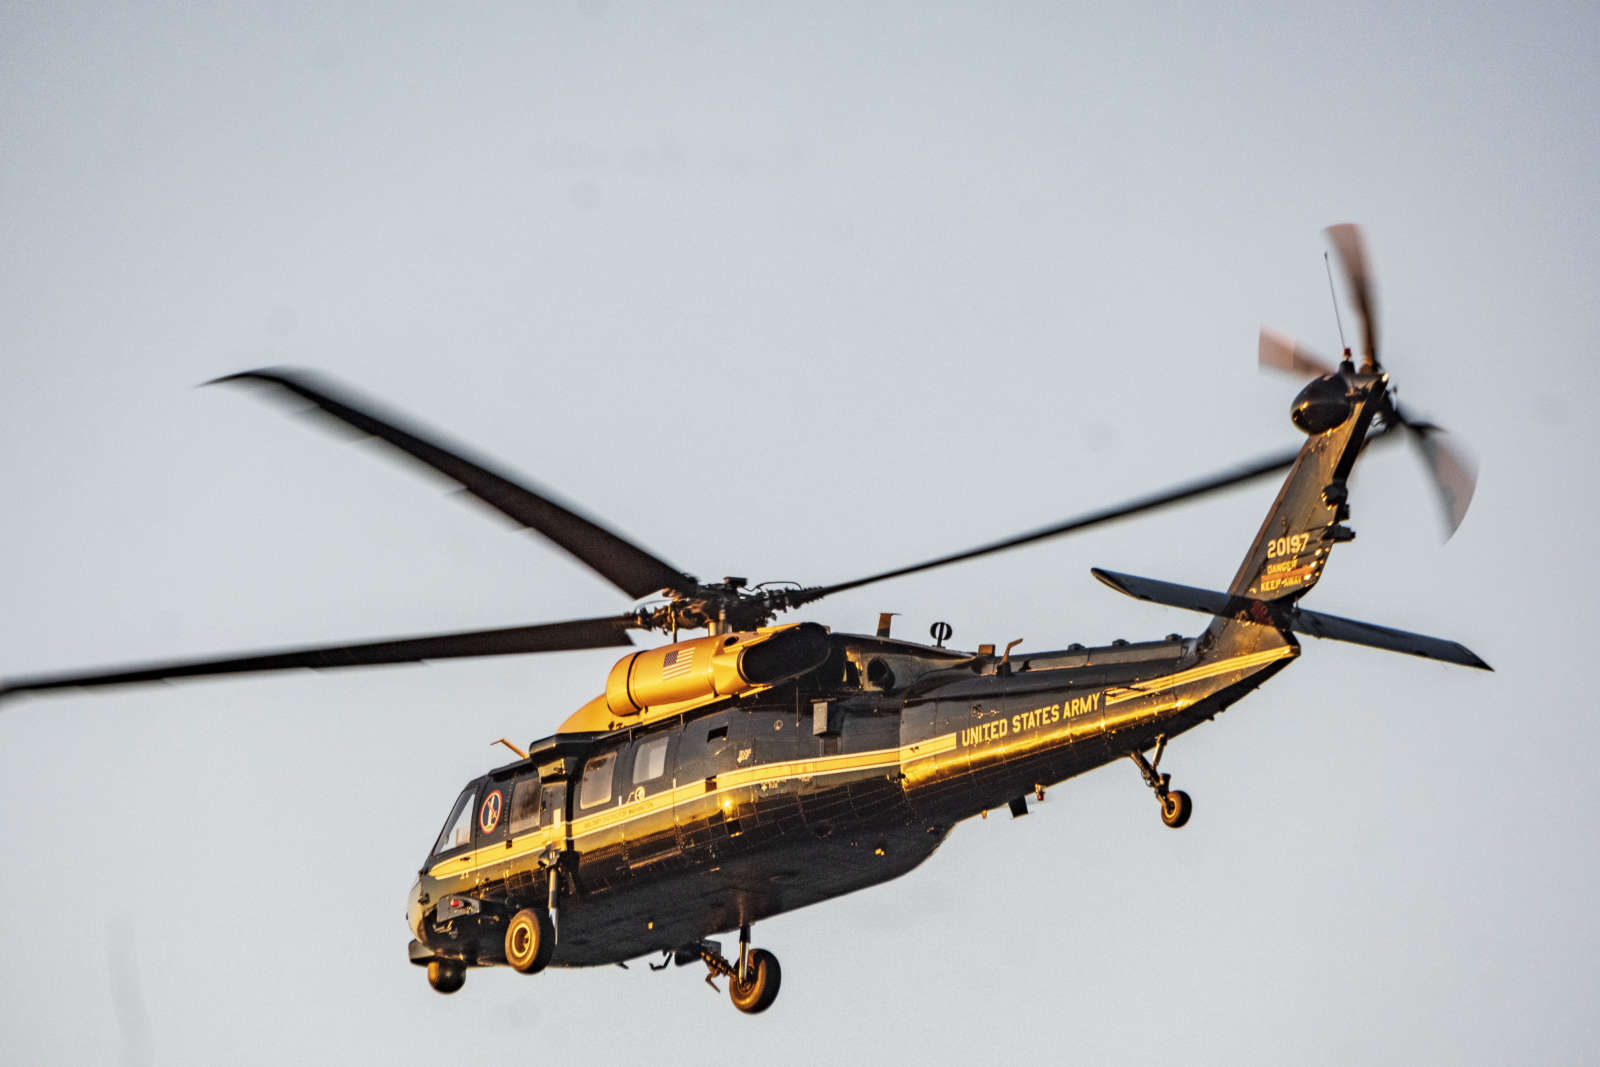 DoD Commits to Looking at New Helicopter Noise Mitigation Strategies